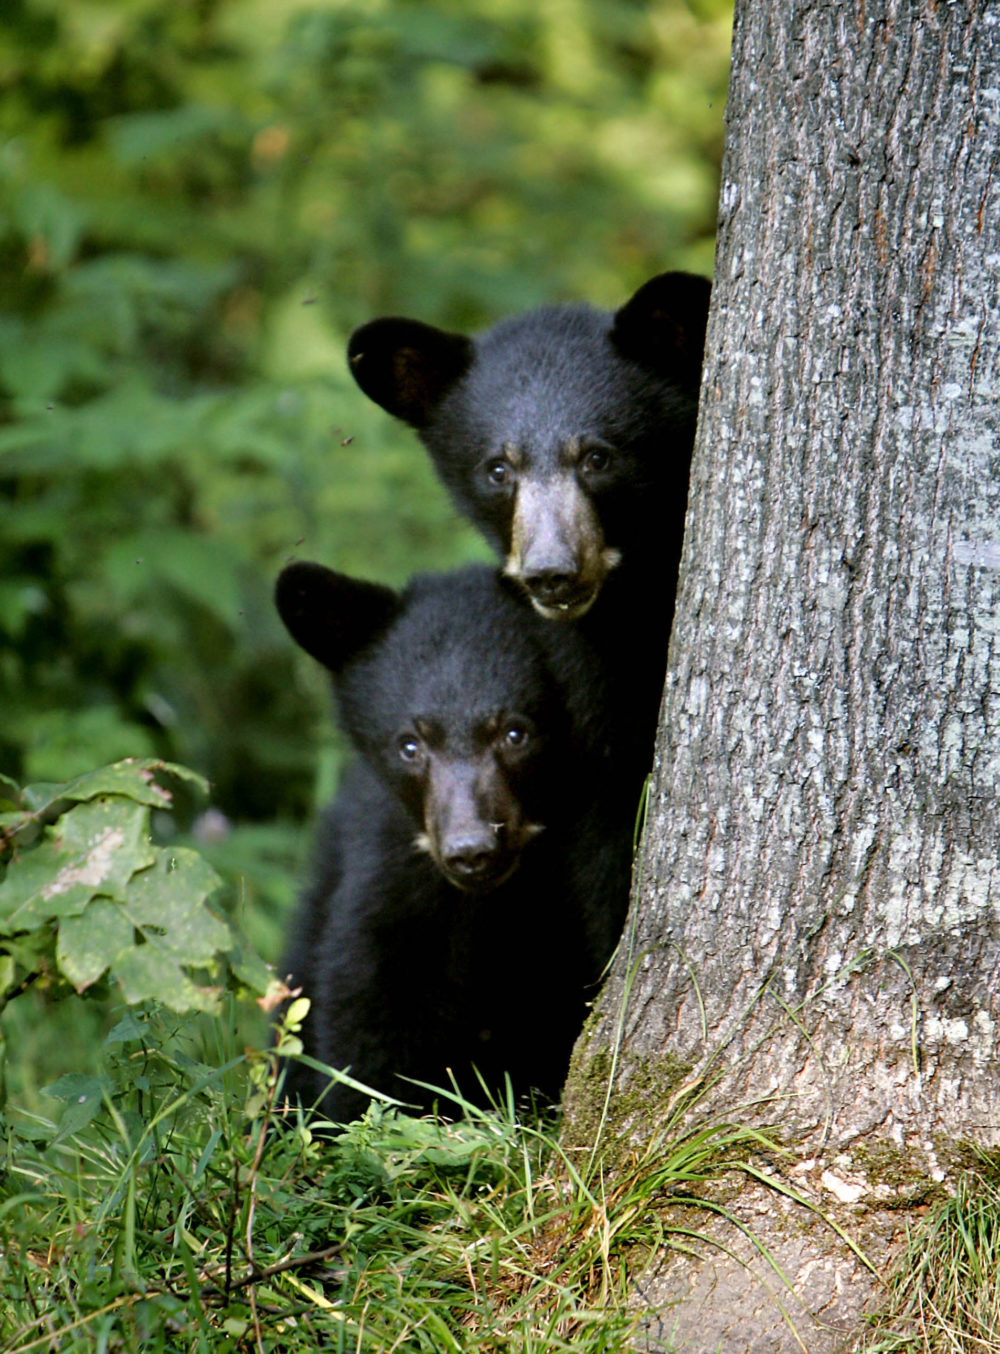 A sanctuary in New Hampshire said it is caring for a growing number of abandoned bear cubs because of food shortages last fall and winter. (Cheryl Senter/AP)